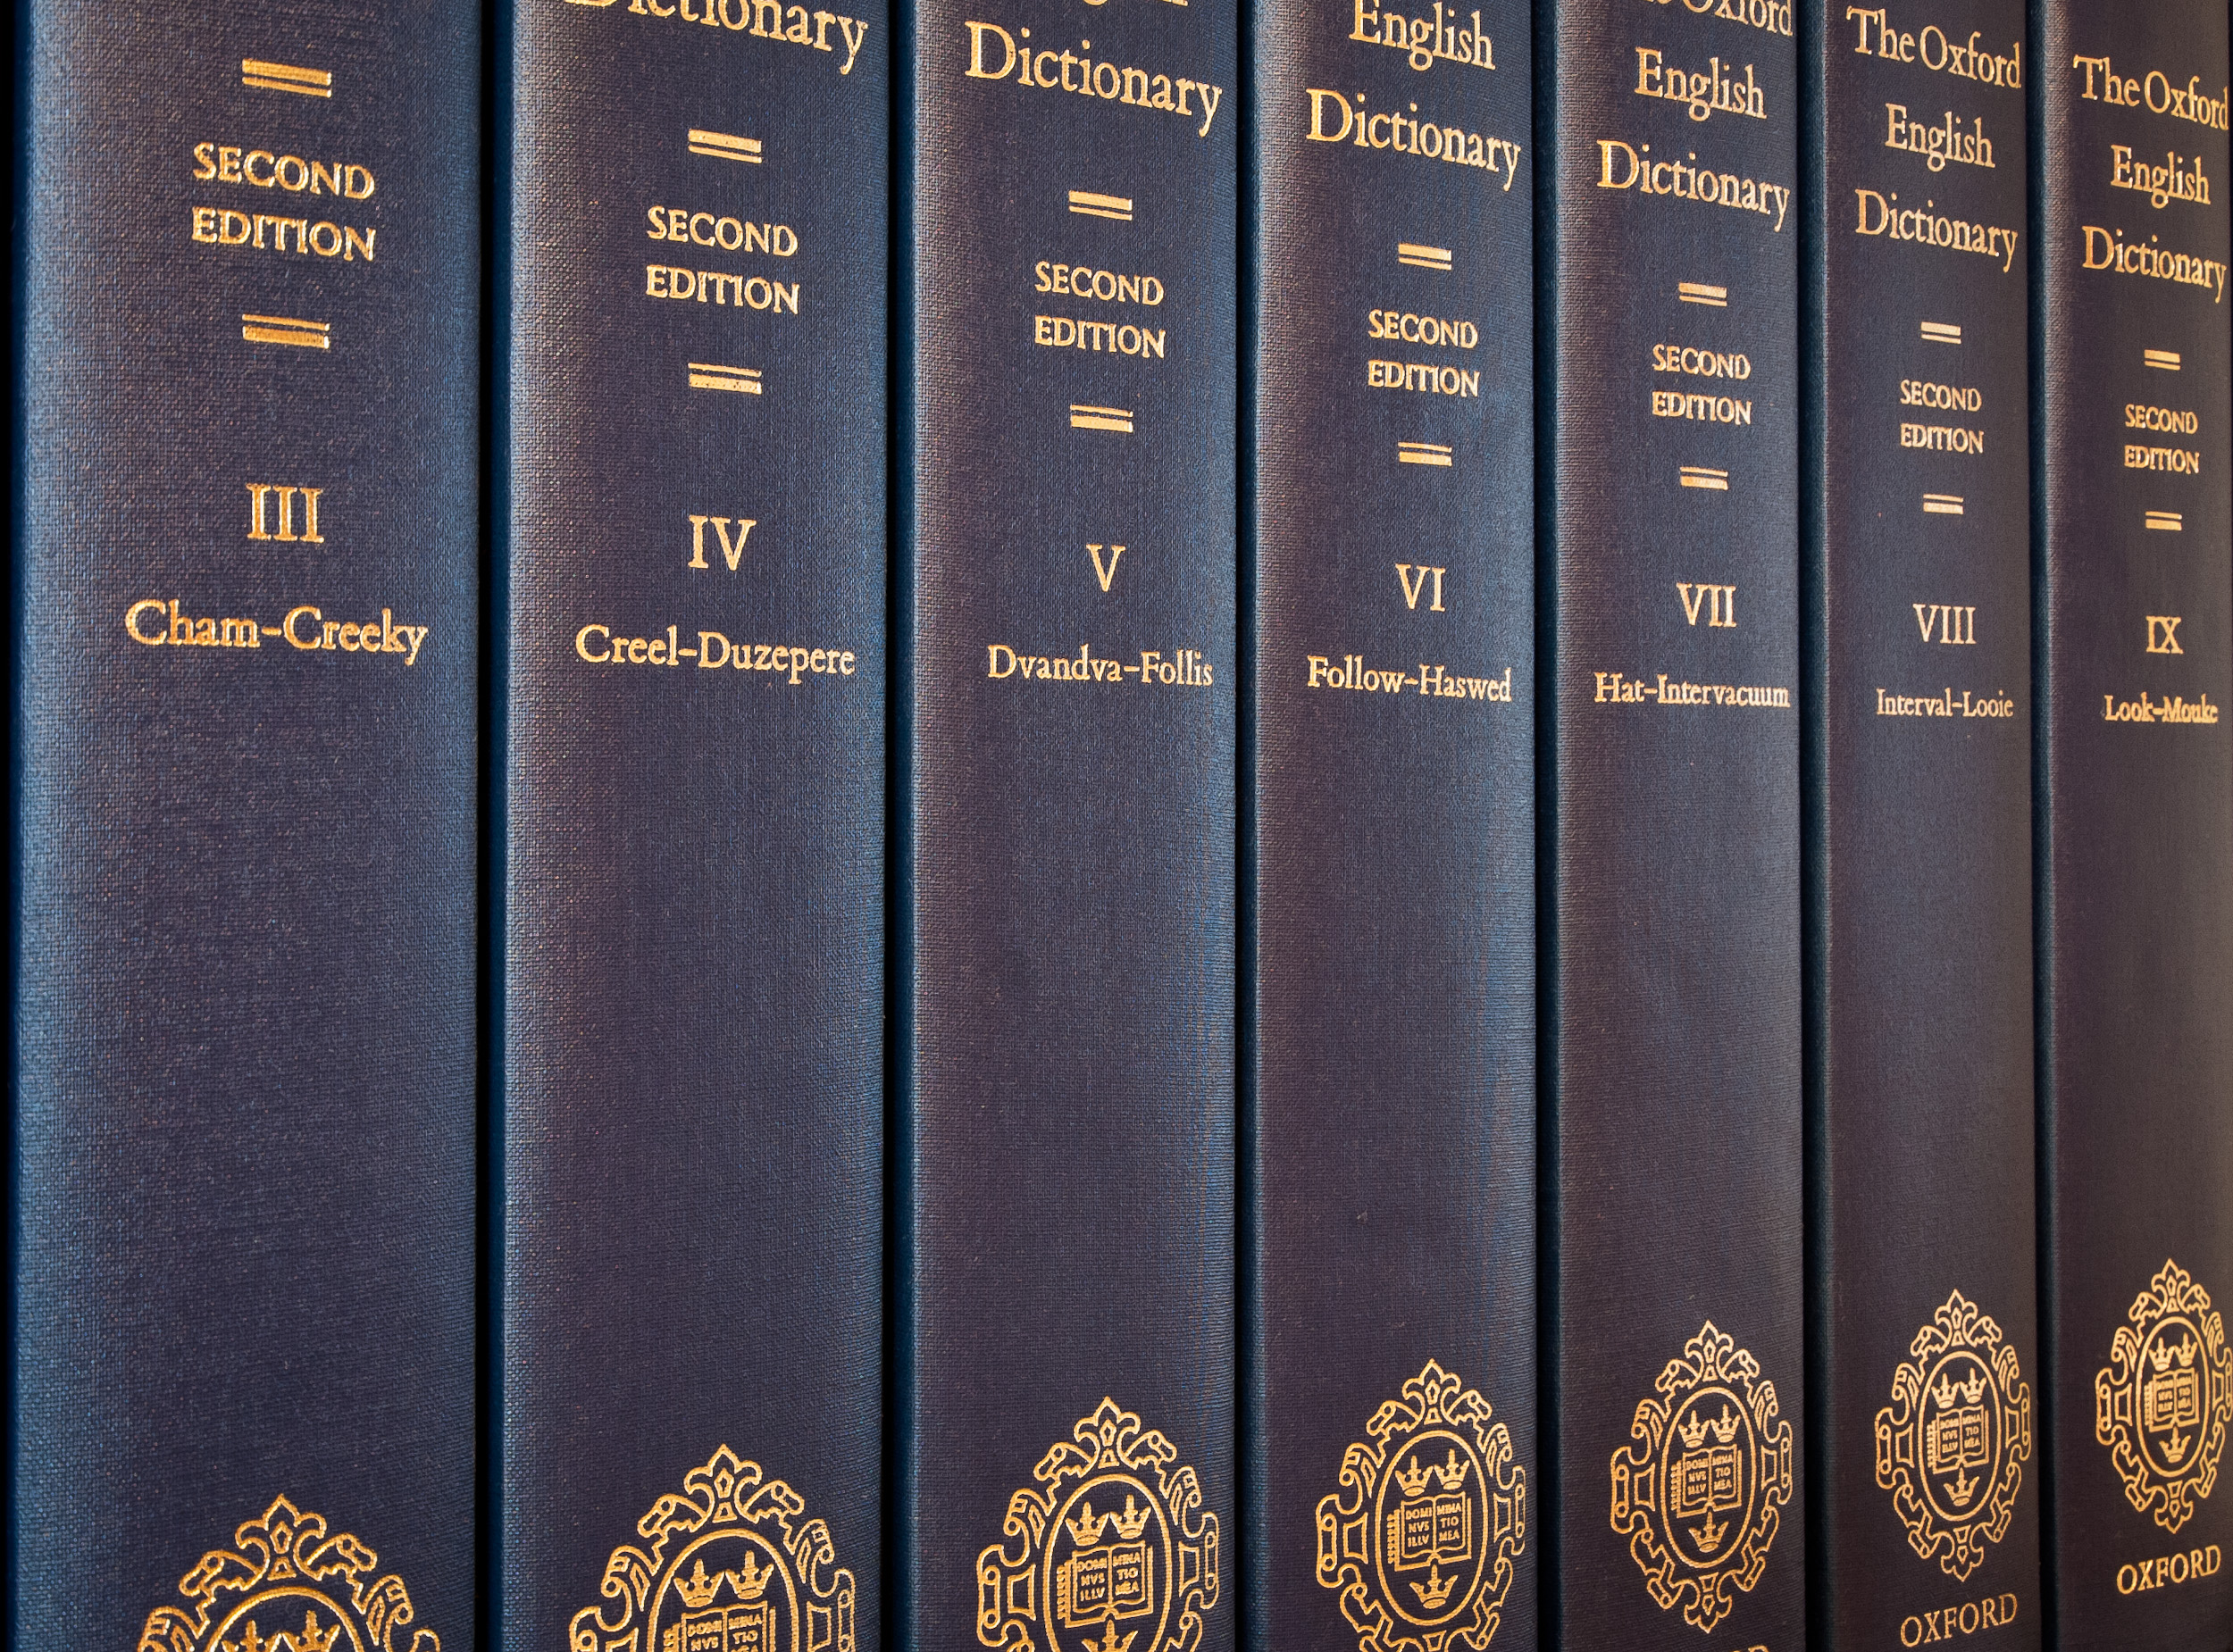 024 Oed2 Volumes Manual For Writers Of Researchs Theses And Dissertations Magnificent Research Papers A 8th Pdf Amazon Full